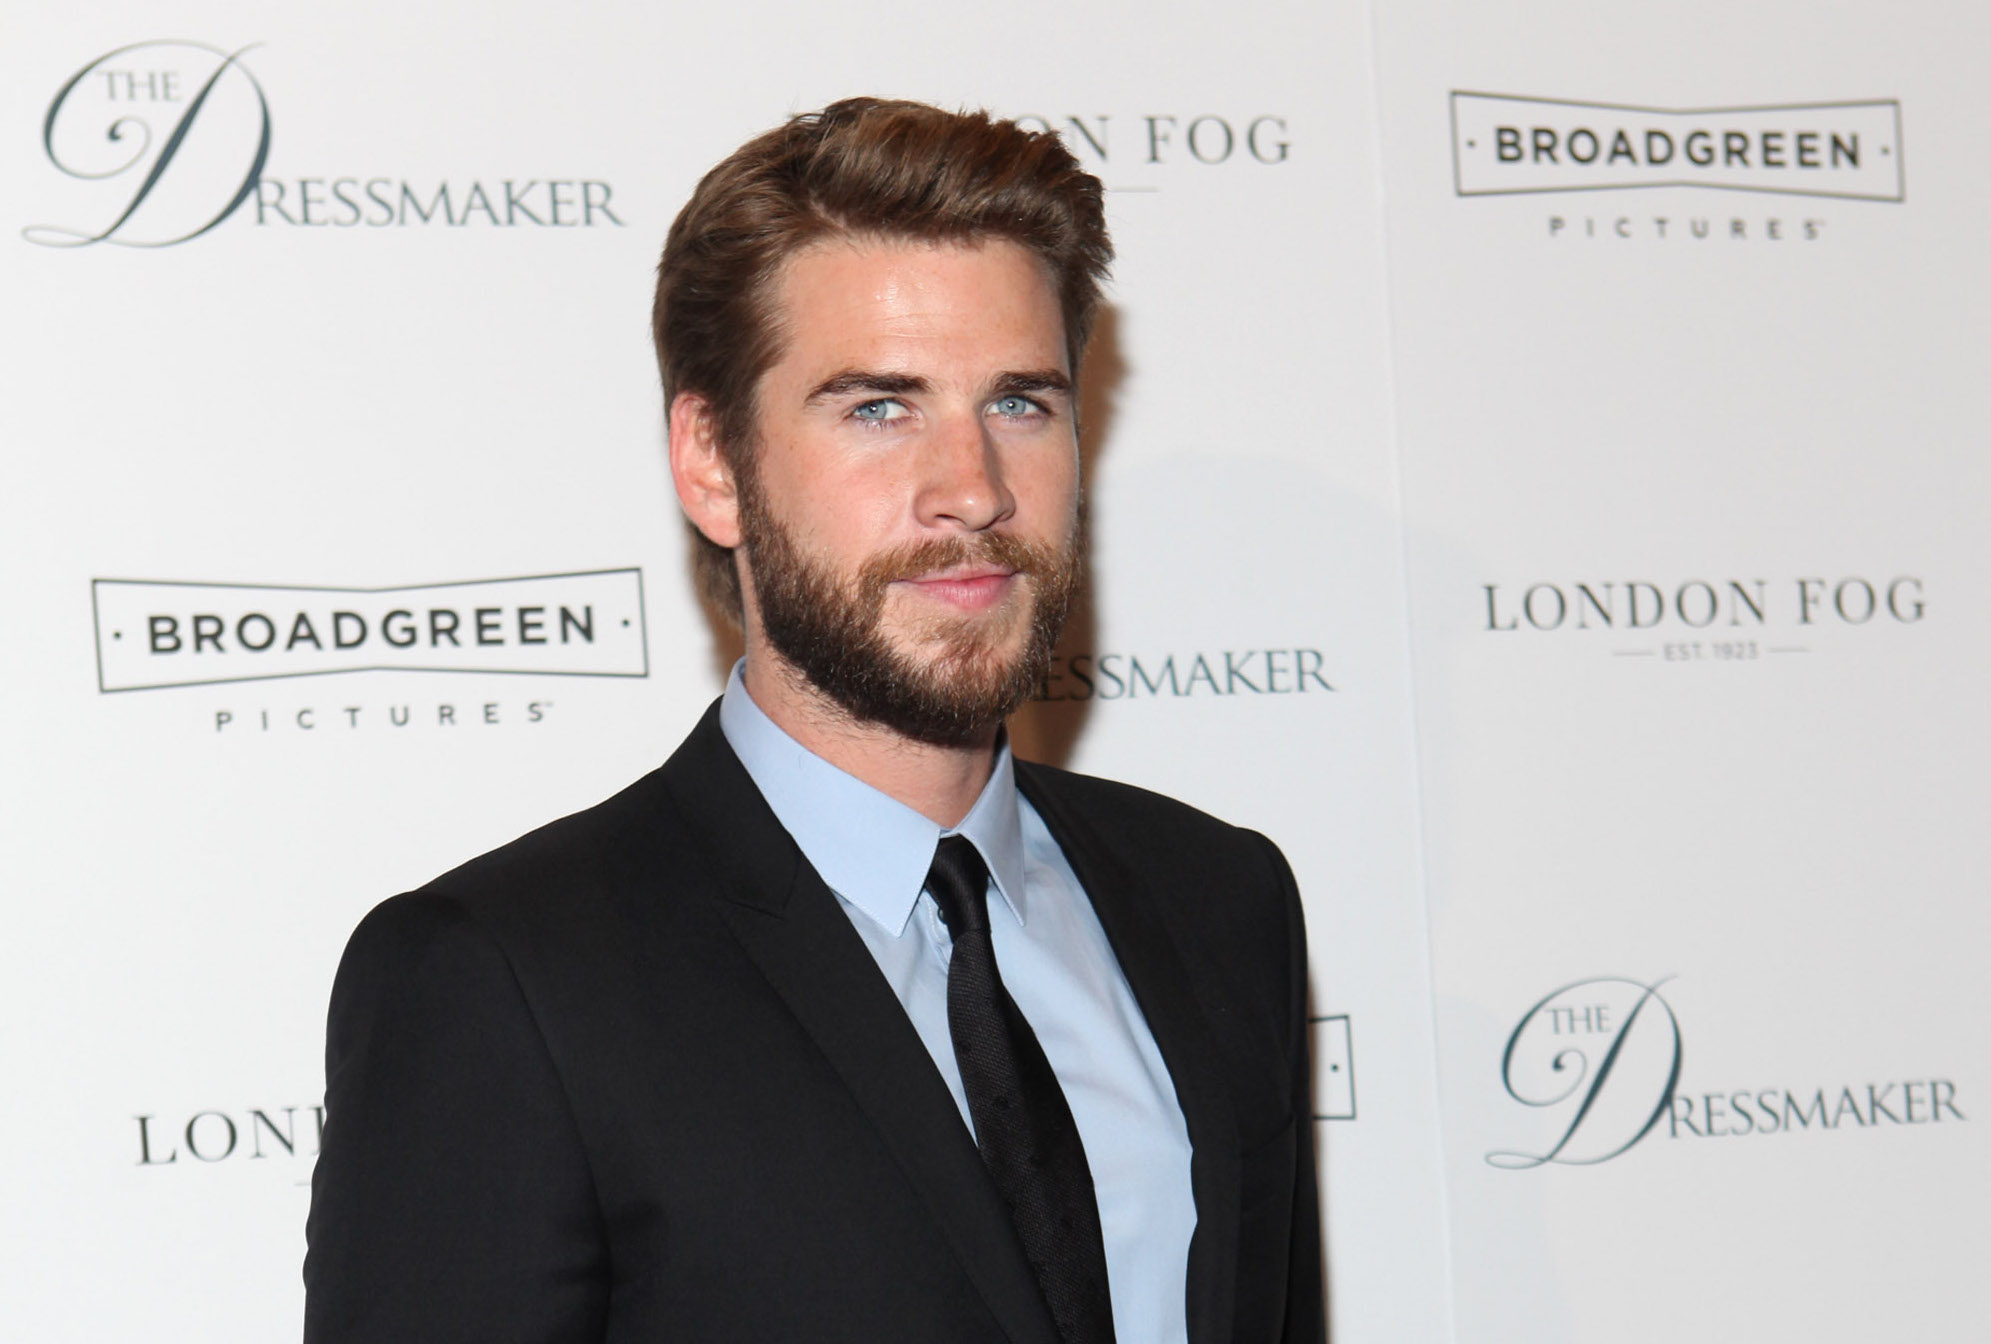 Liam Hemsworth is adorably relatable as he talks about getting ready for his shirtless scene